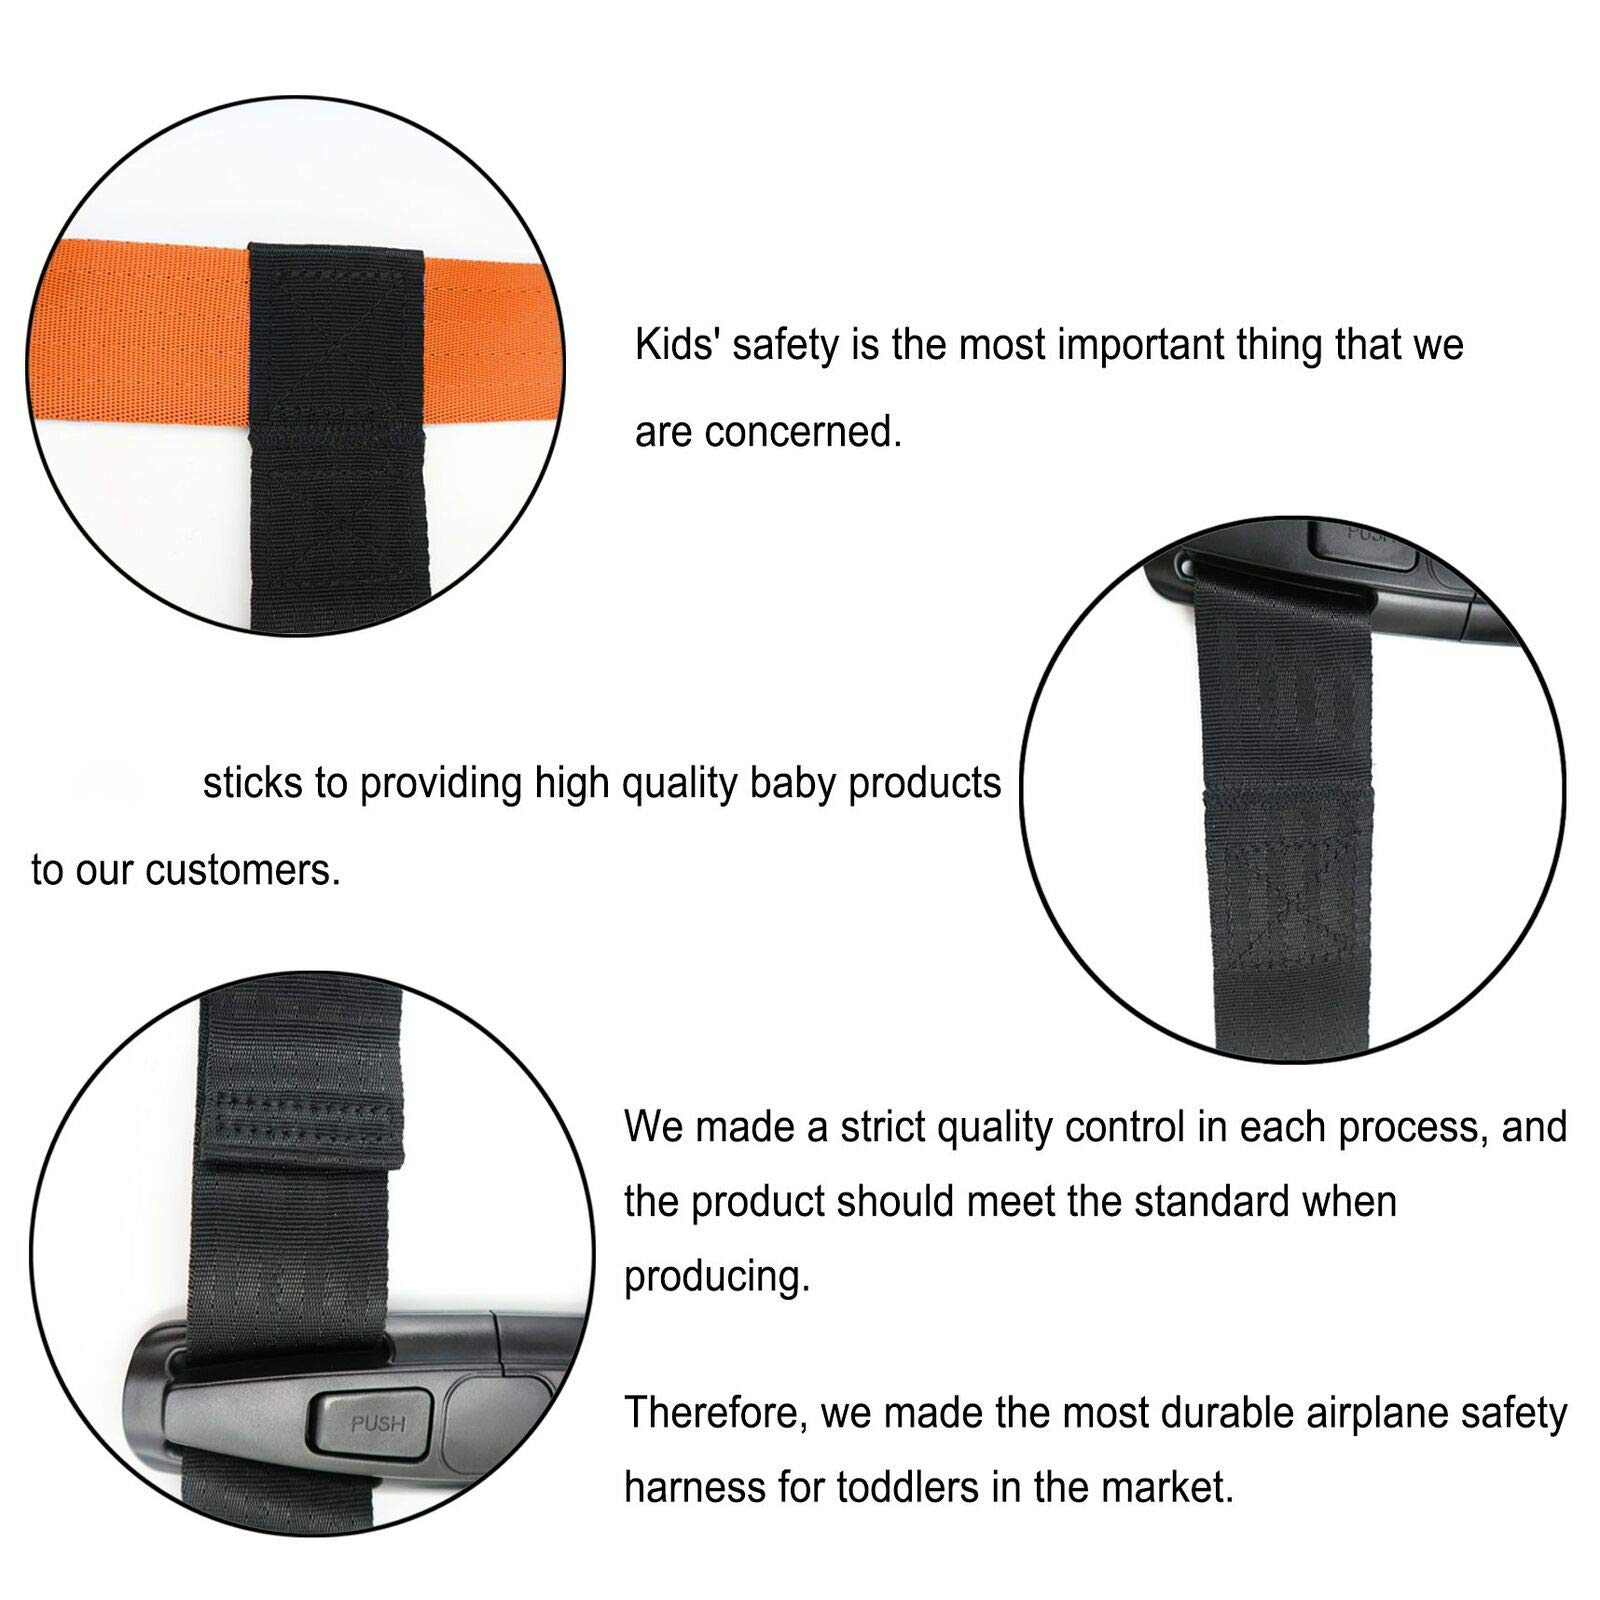 Child Airplane Travel Harness - Cares Safety Restraint System - The Travel Harness Safety System Will Protect Your Child from Dangerous - Black by CVFOX (Image #2)